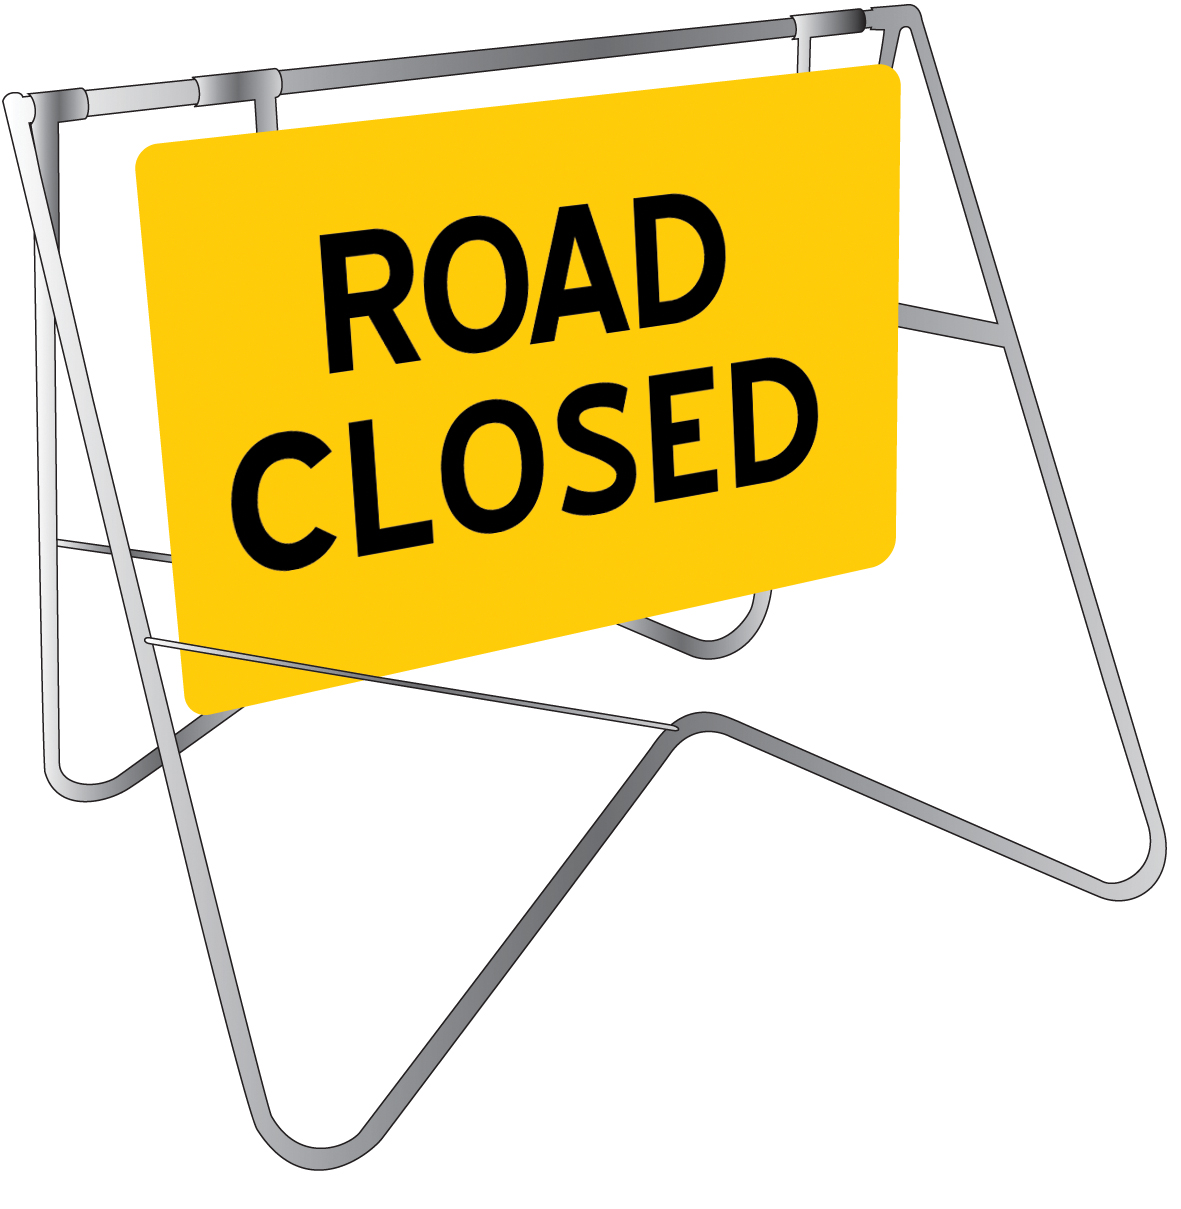 Swing Stand Road Closed